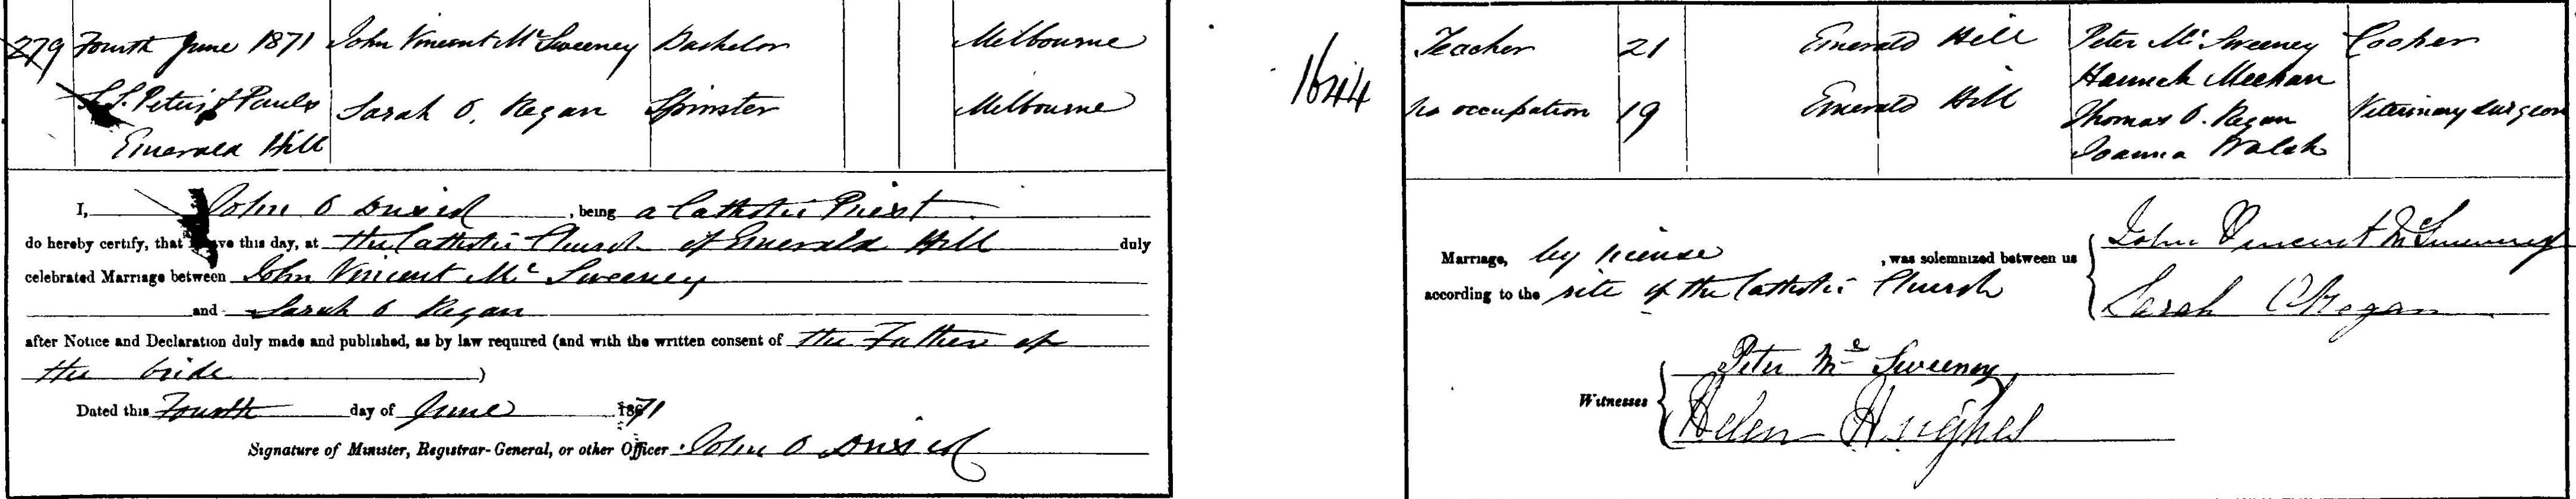 John Vincent McSweeney and Sarah O'Regan Marriage 1871cropped